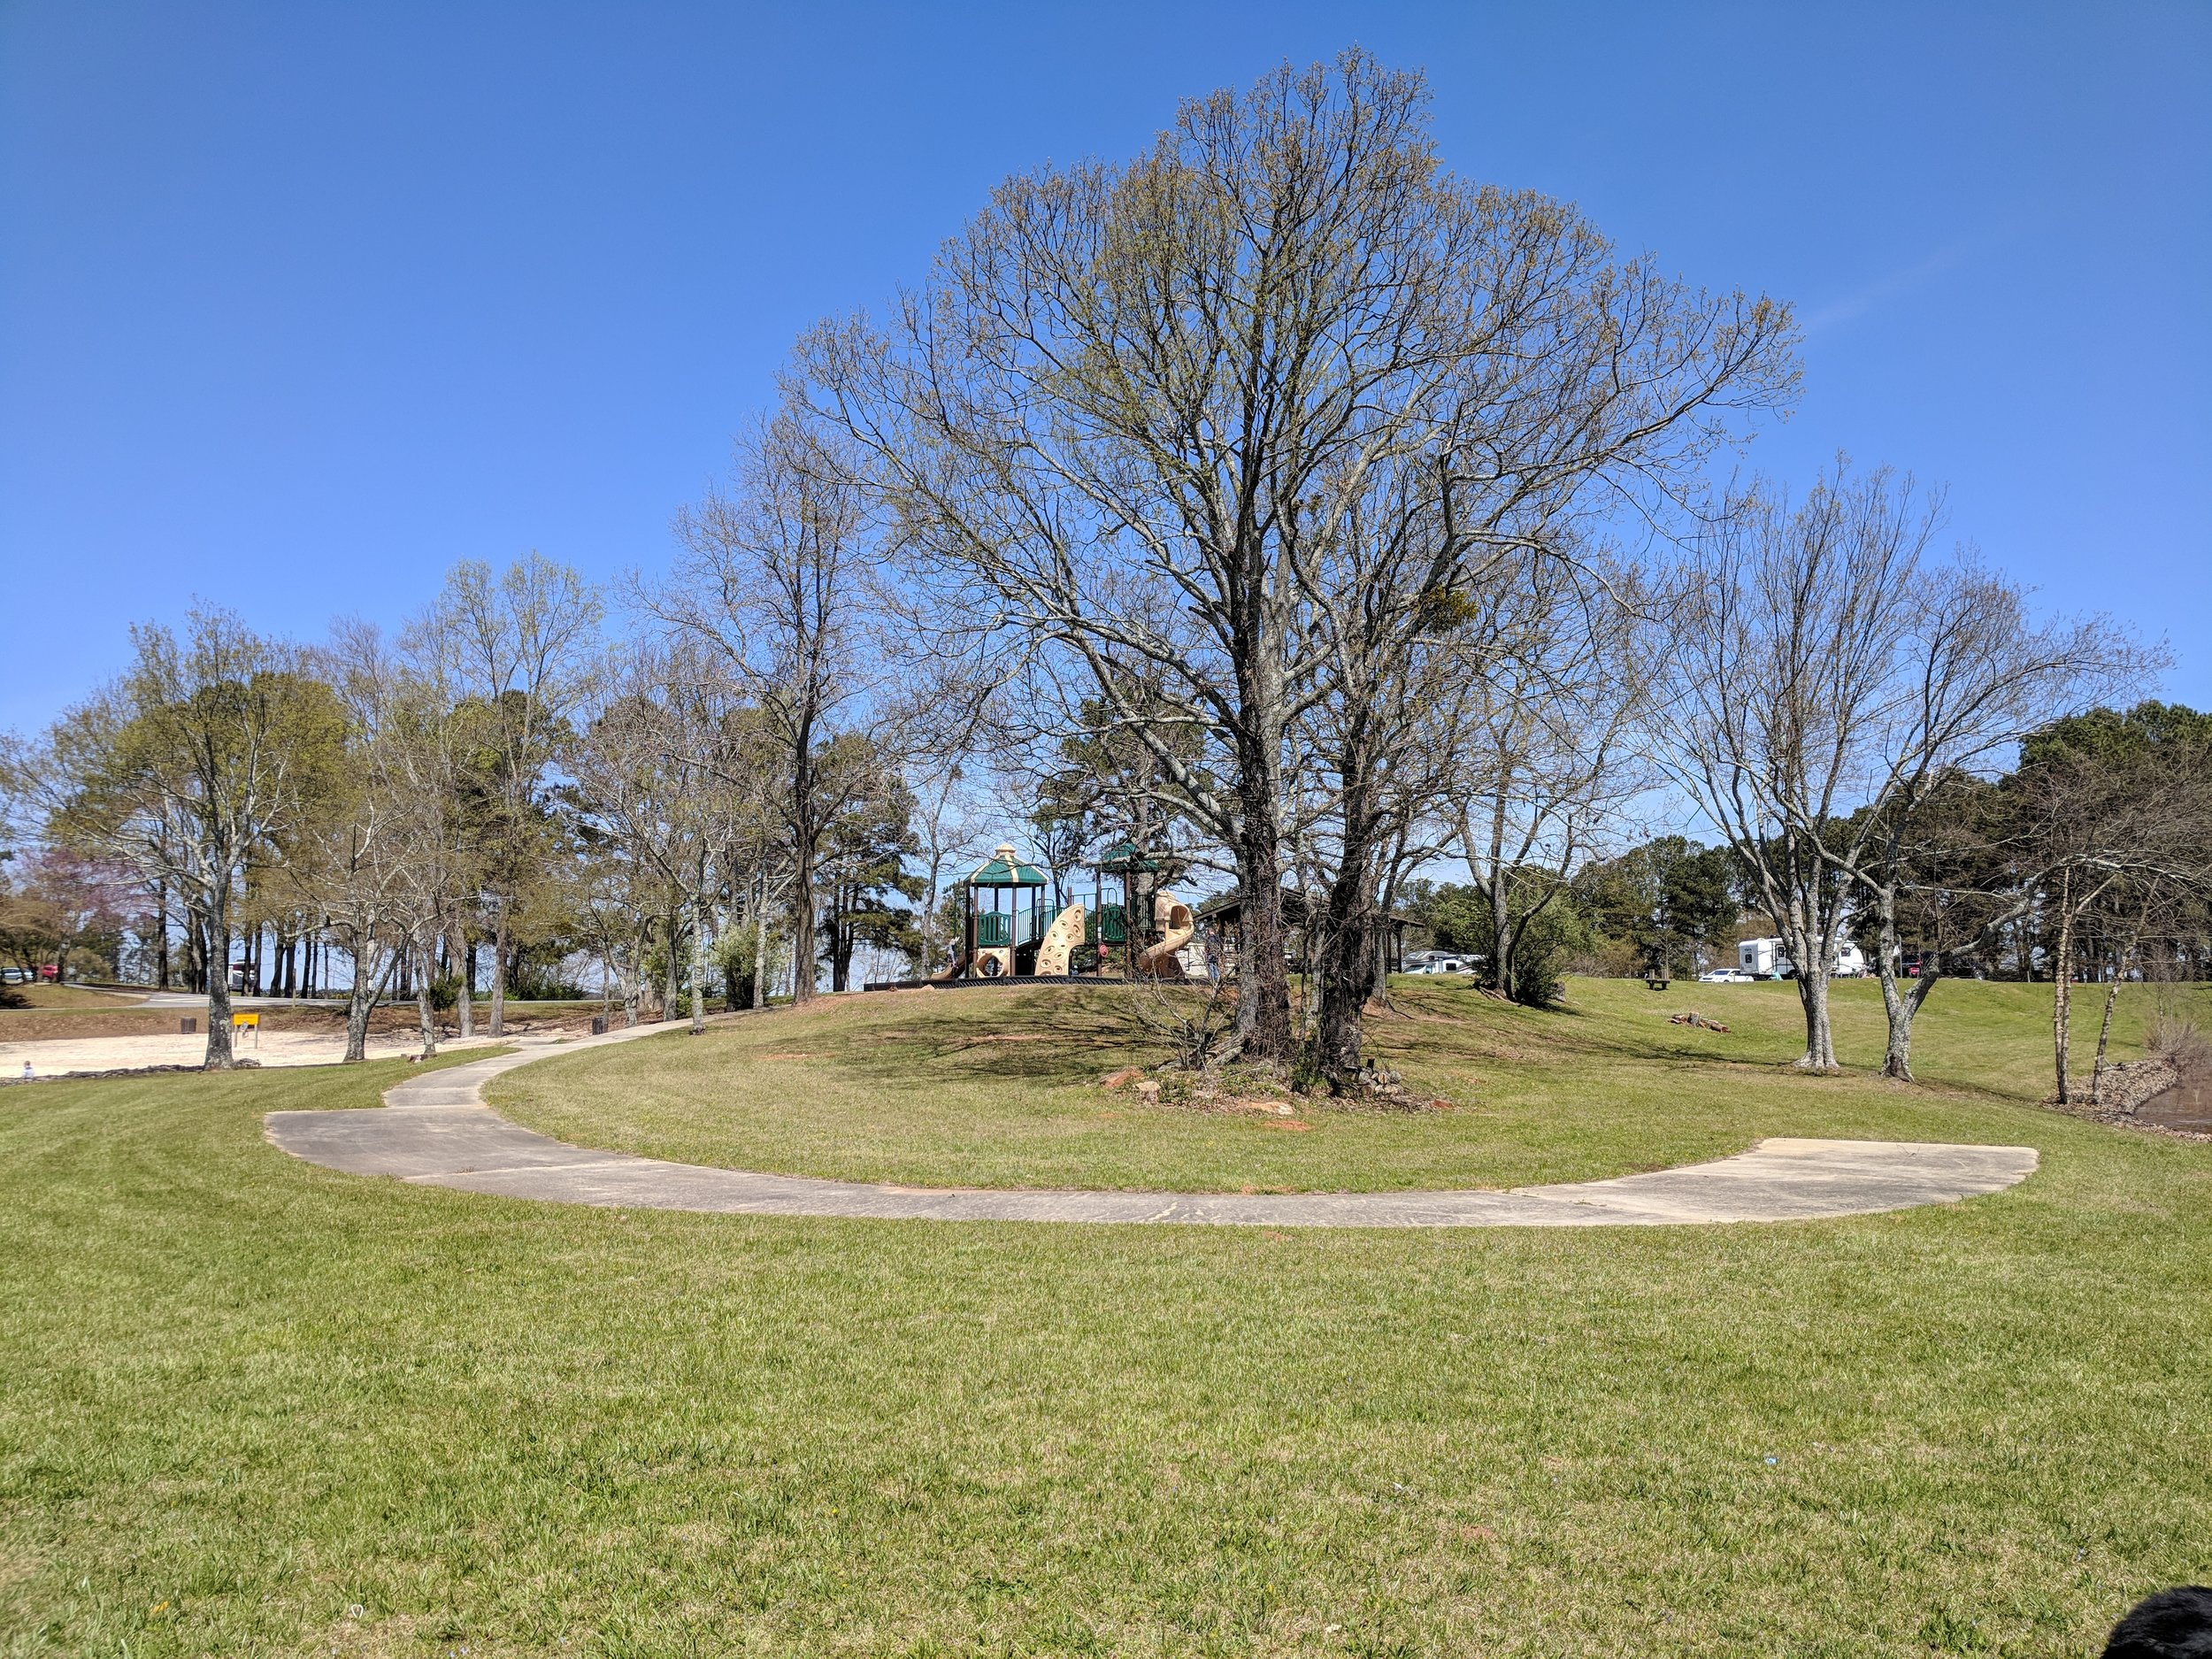 The sandy public beach area is to the left of the playground